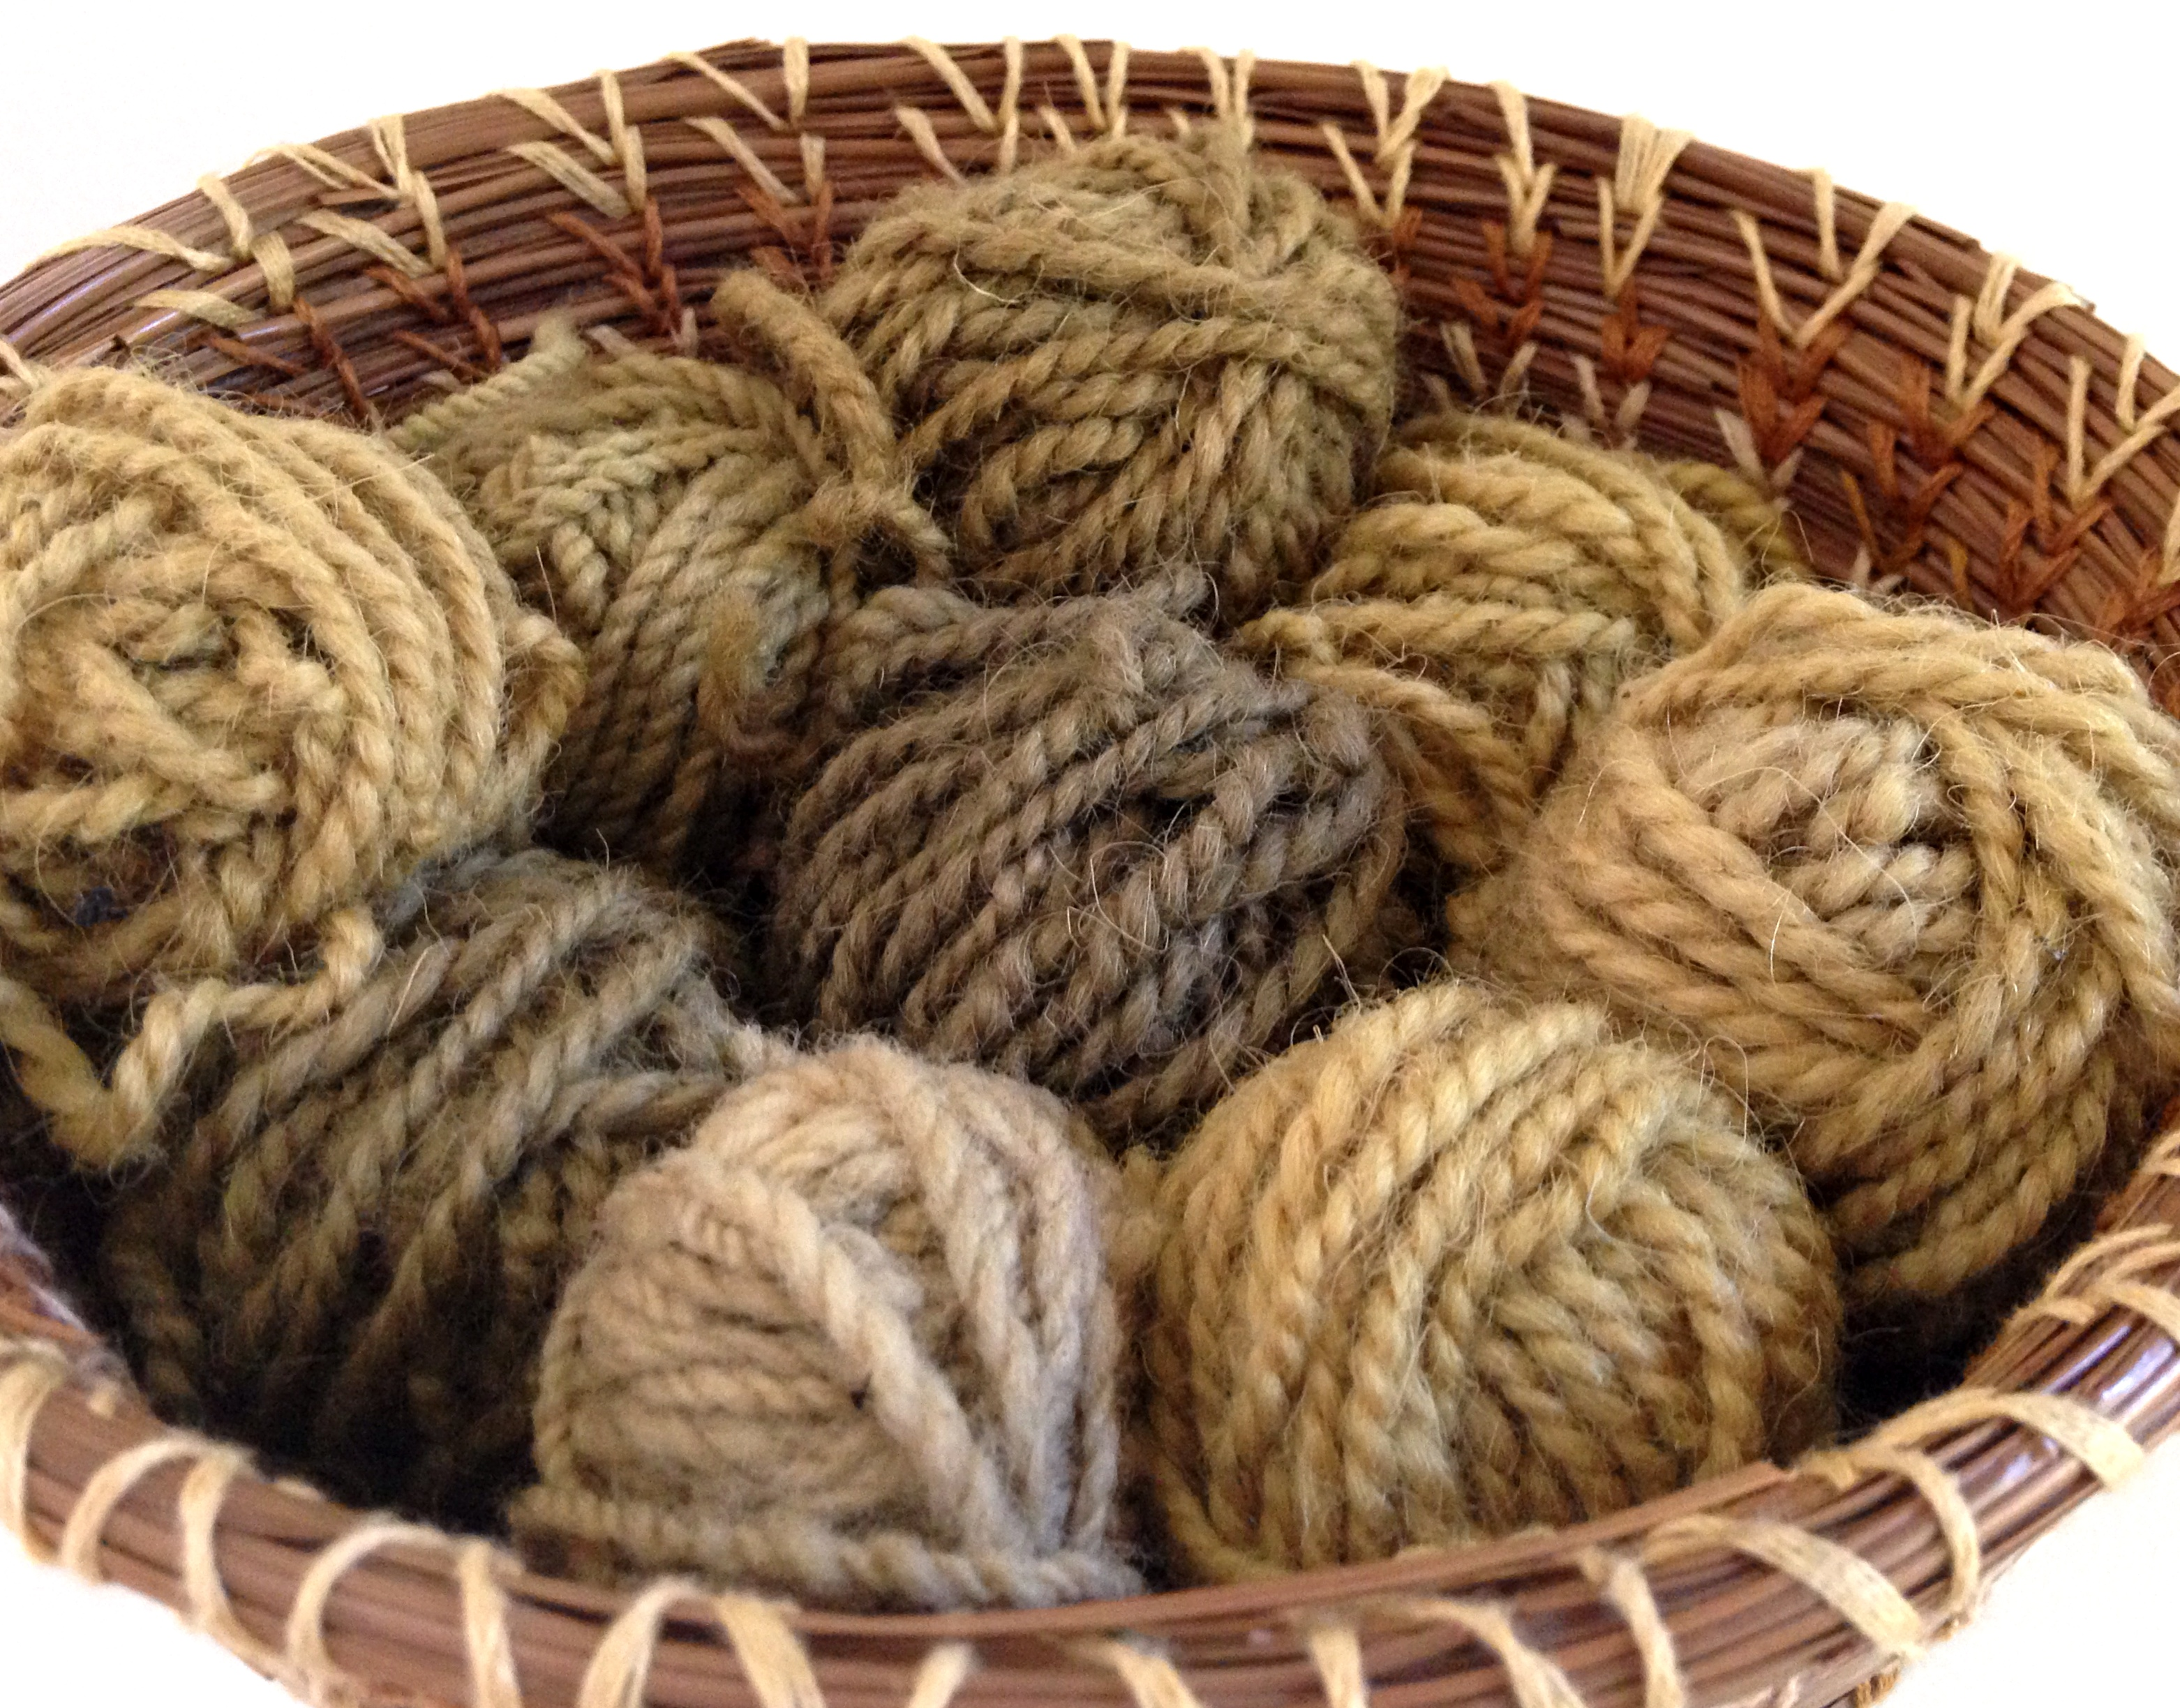 stinging nettle dye, plant dye, natural dyes, coiled pine needle basket, close up of yarn